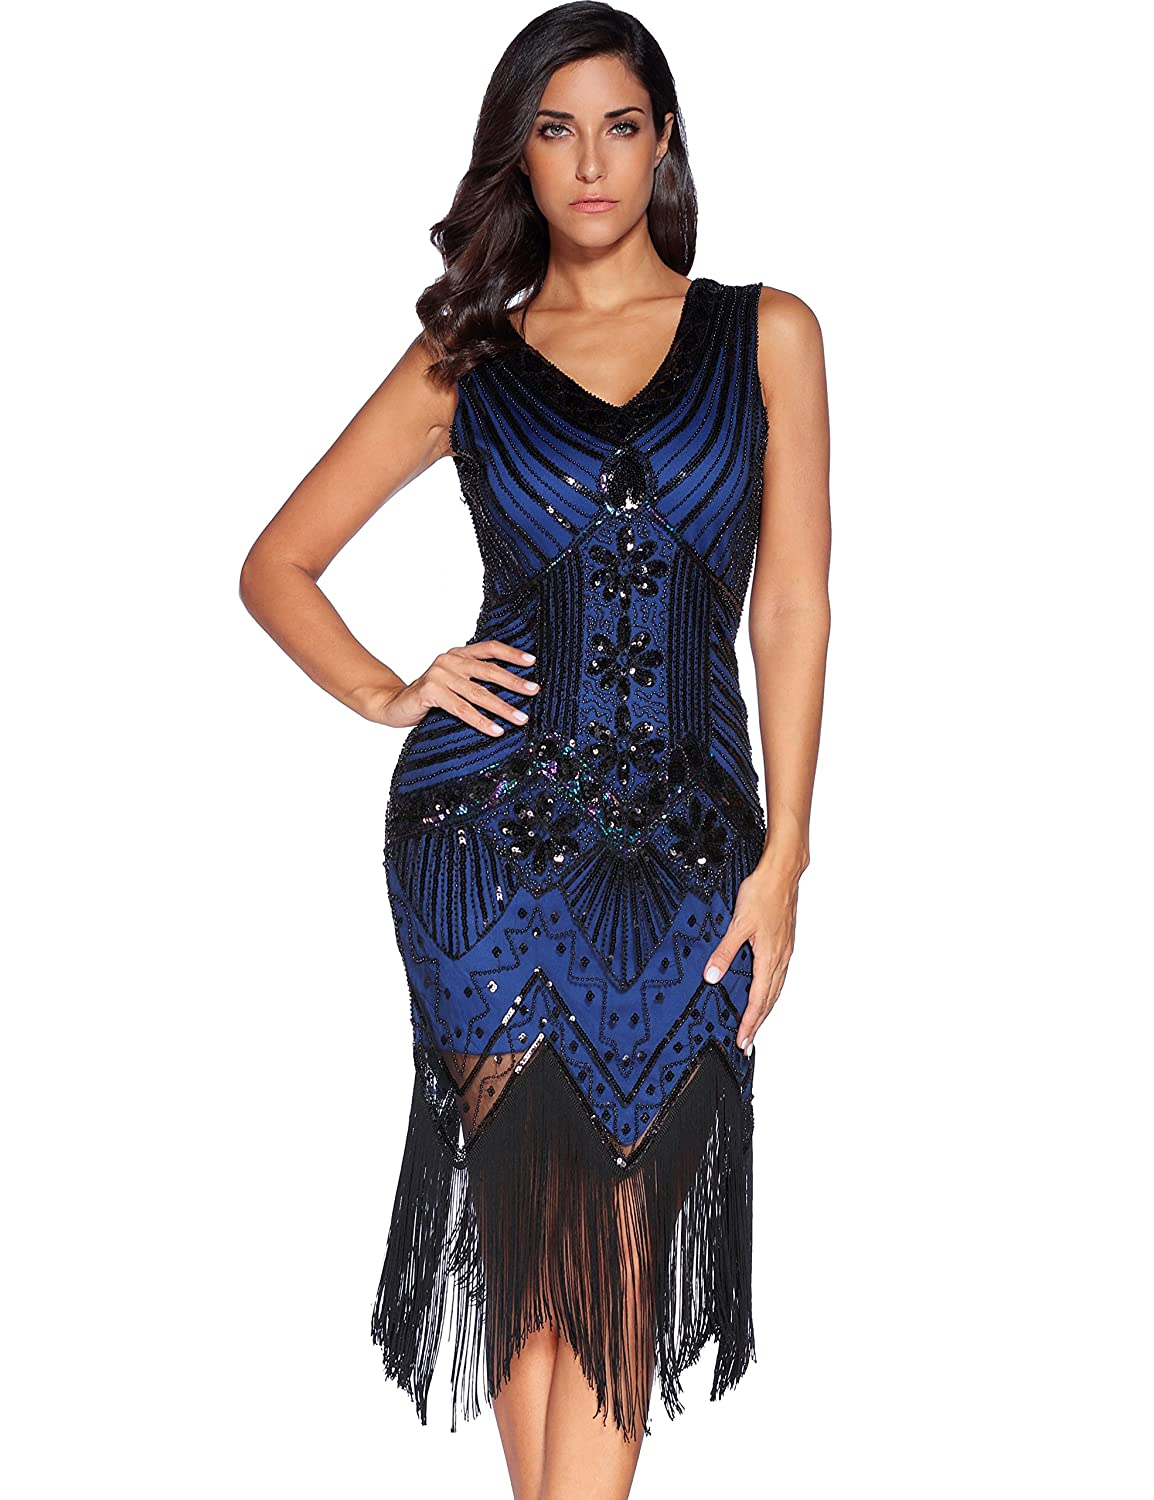 1920s Costumes: Flapper, Great Gatsby, Gangster Girl Meilun 1920s Sequined Vintage Dress Beaded Gatsby Flapper Evening Dress Prom $37.50 AT vintagedancer.com